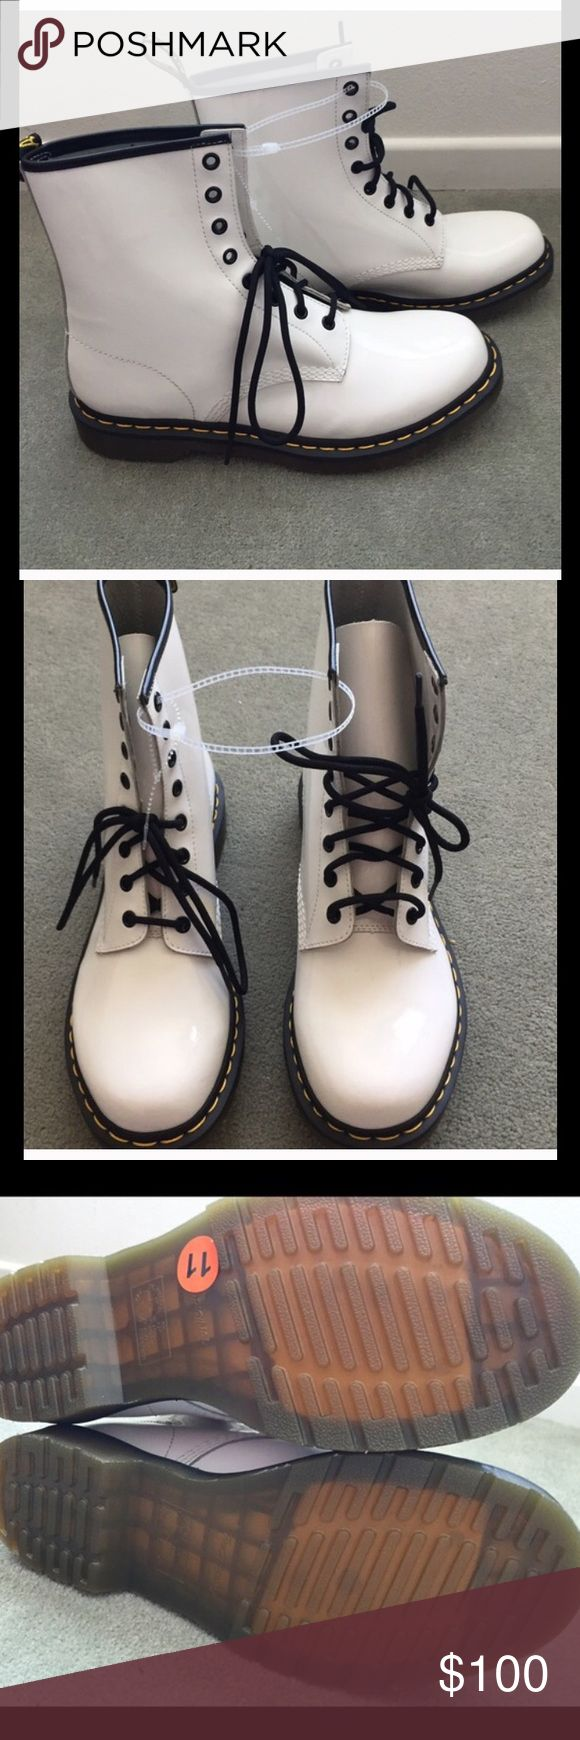 """""""Dr Martens"""" Boots NWOT """"Dr Martens"""" Boots. Size 11. They have 2 scuff marks which are shown in the last picture otherwise they are in excellent condition. So gorgeous. Thanks for looking and feel free to ask me any questions 😊 Dr. Martens Shoes"""